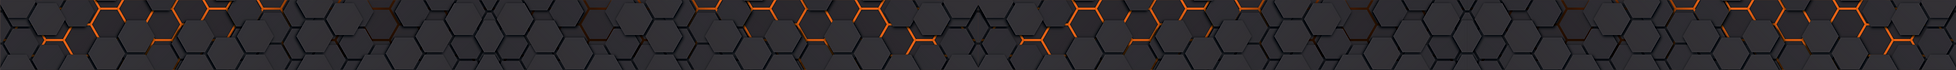 STRIP BACKGROUND HONEYCOMB LONG.png